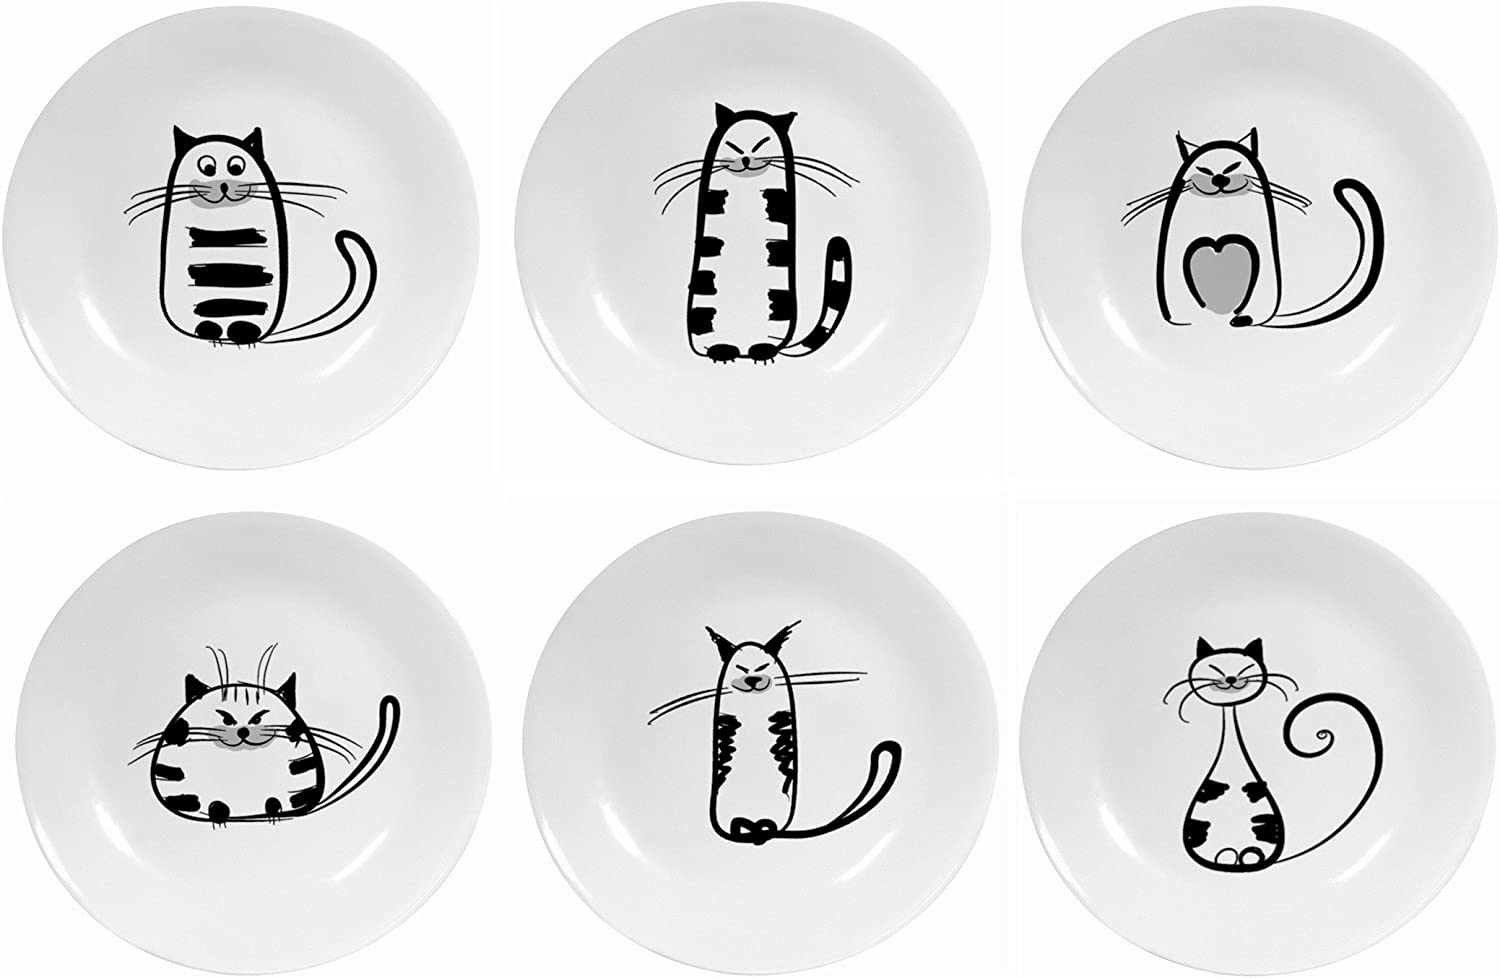 Small Size (2.8 Inch) Resuable Round Ceramic Cat Pattern Saucer Plates, Porcelain Seasoning Dishes Tea Cup Holders by Hoocozi, 6Pcs, White